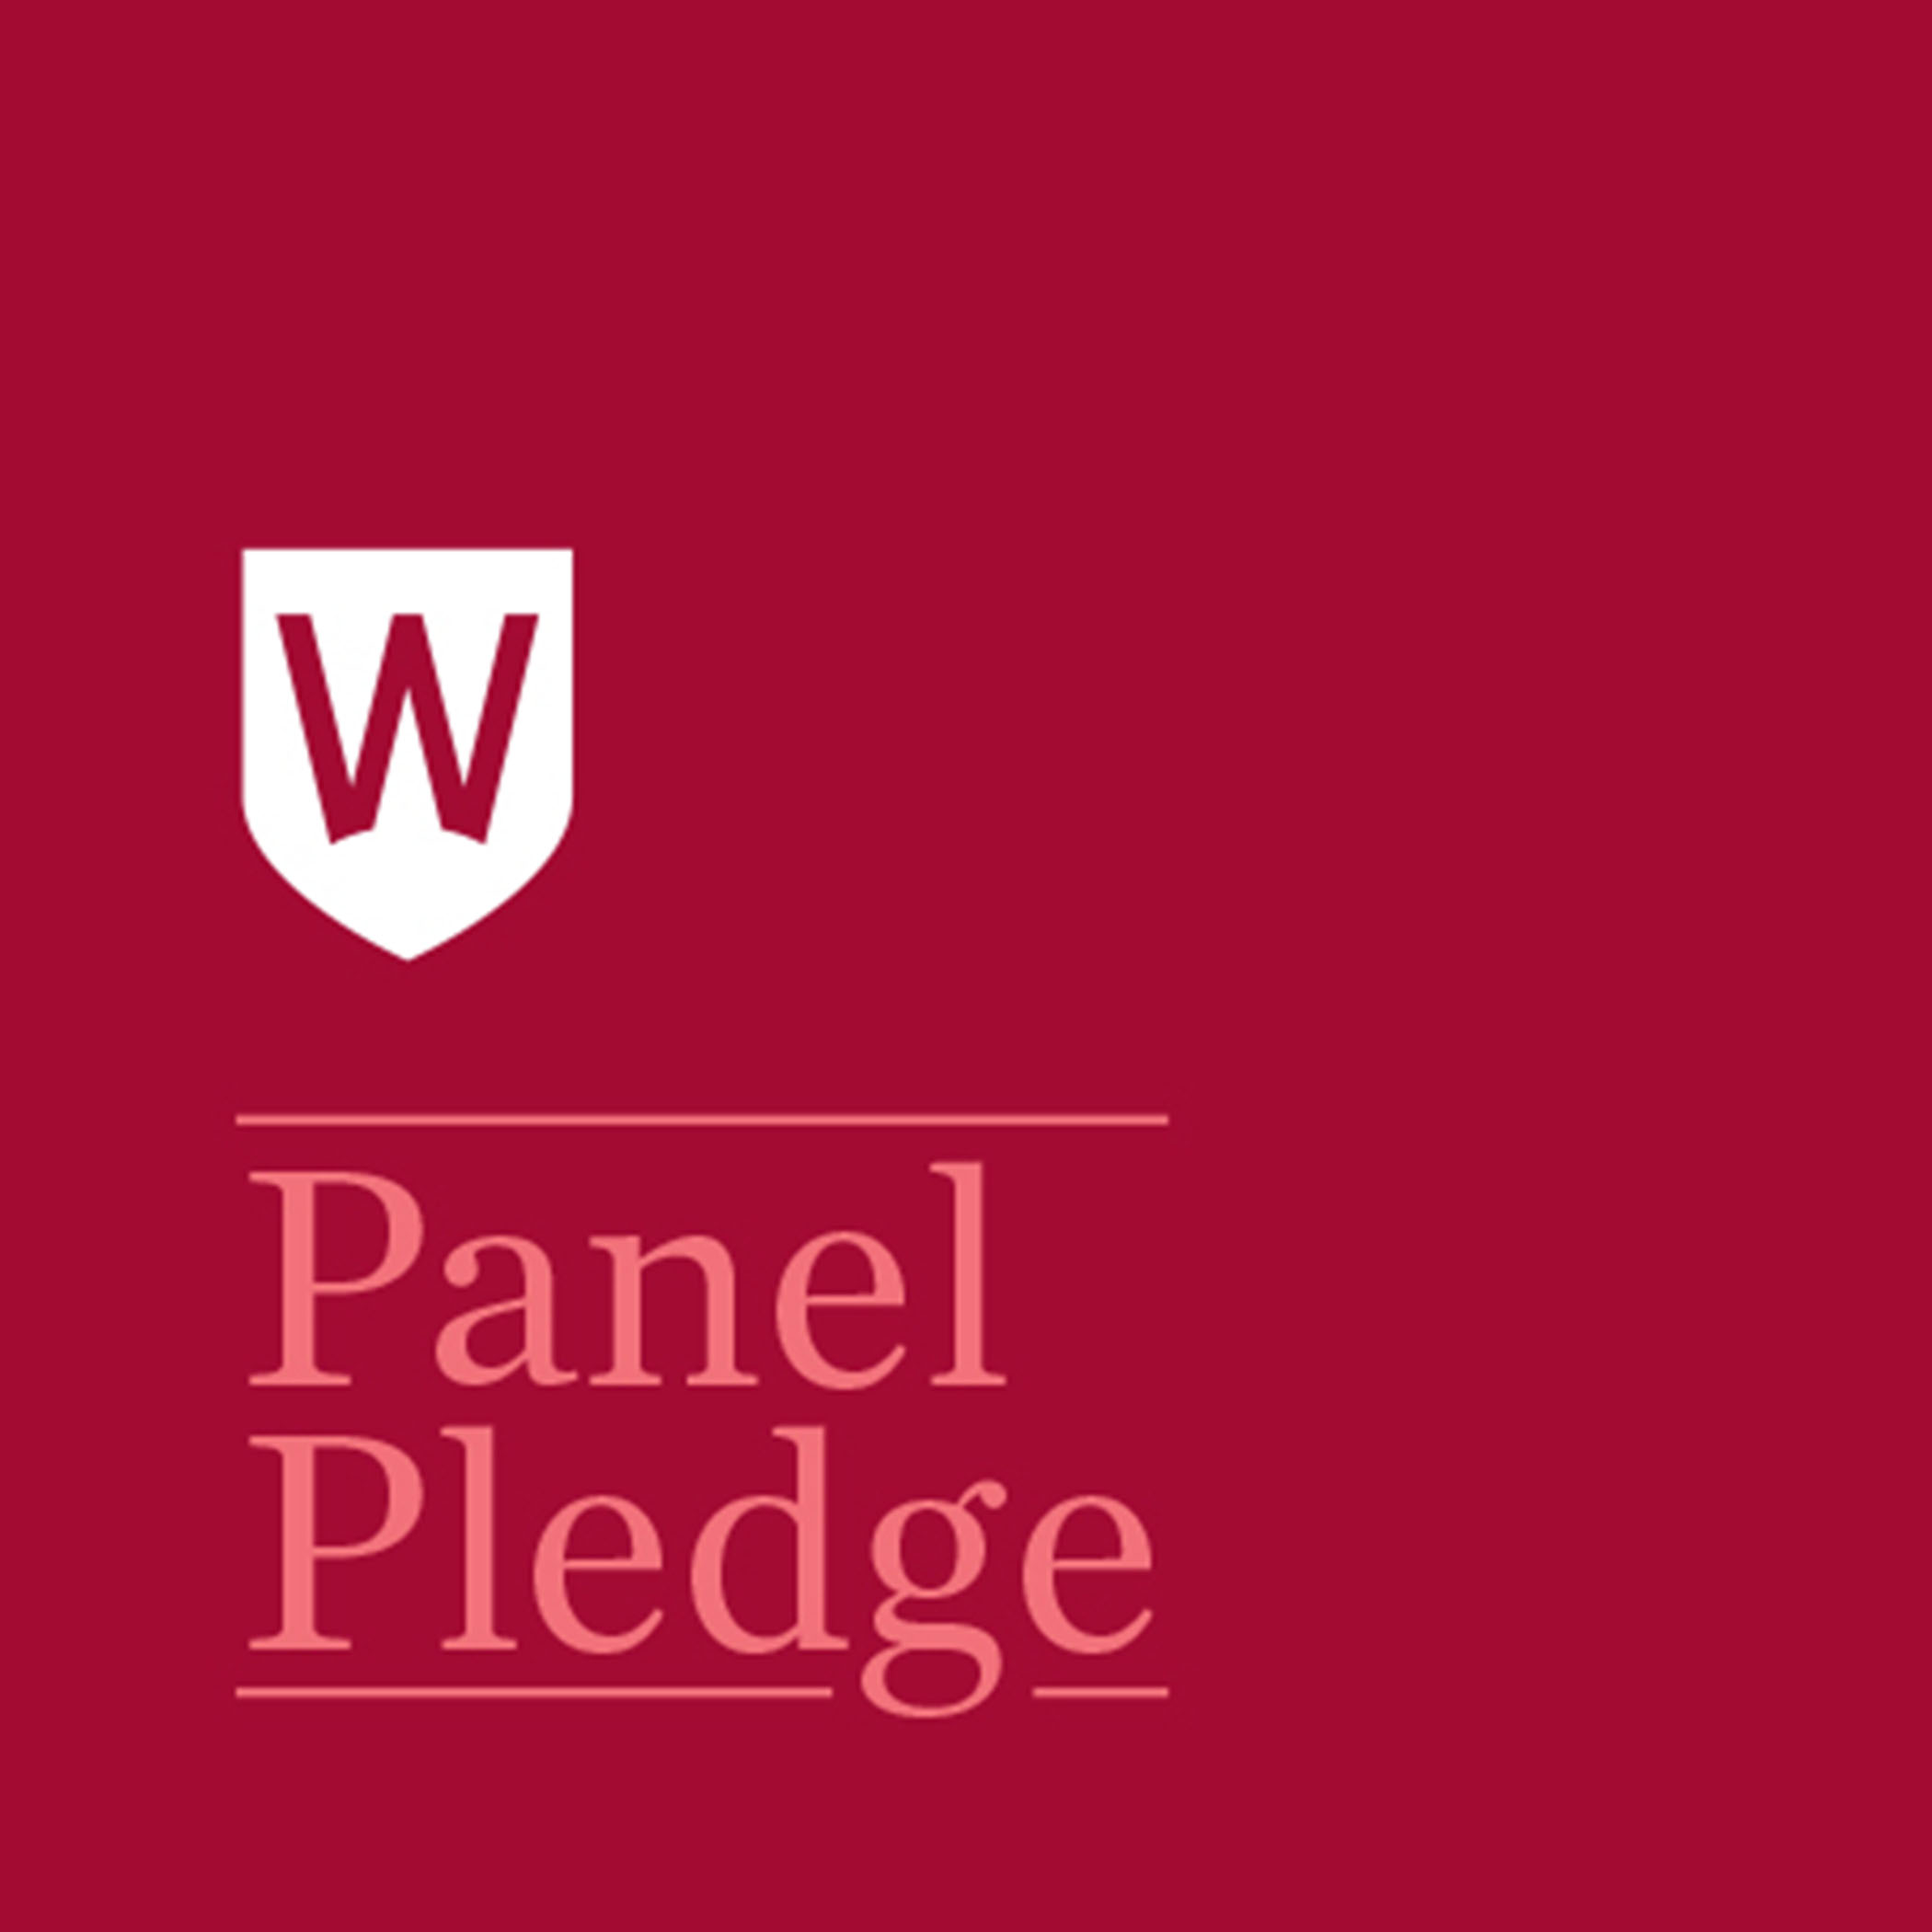 Panel Pledge Square